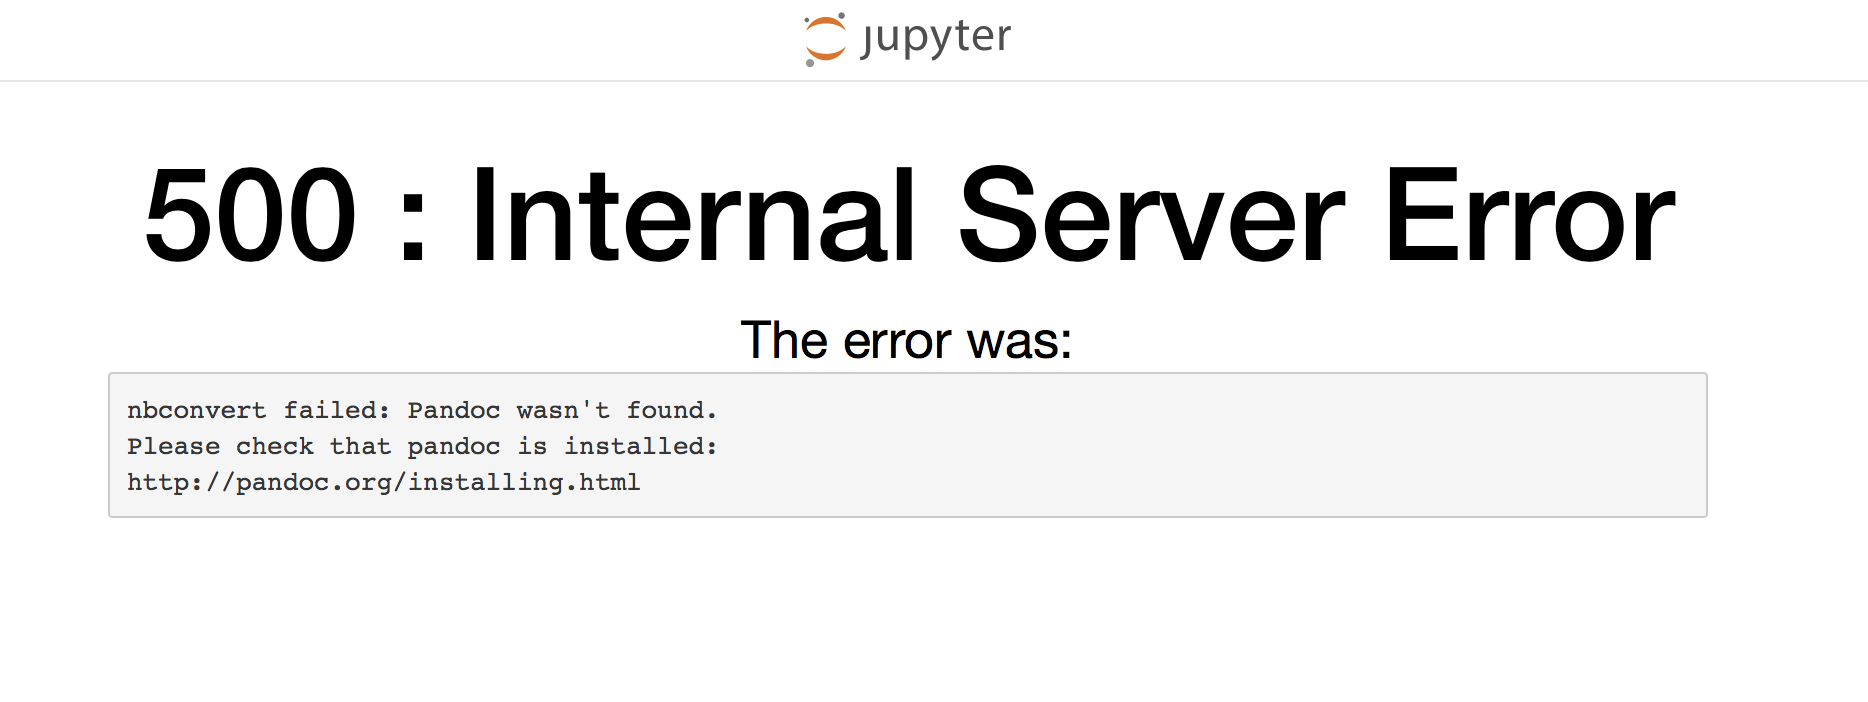 What Is A Jupyter Notebook?